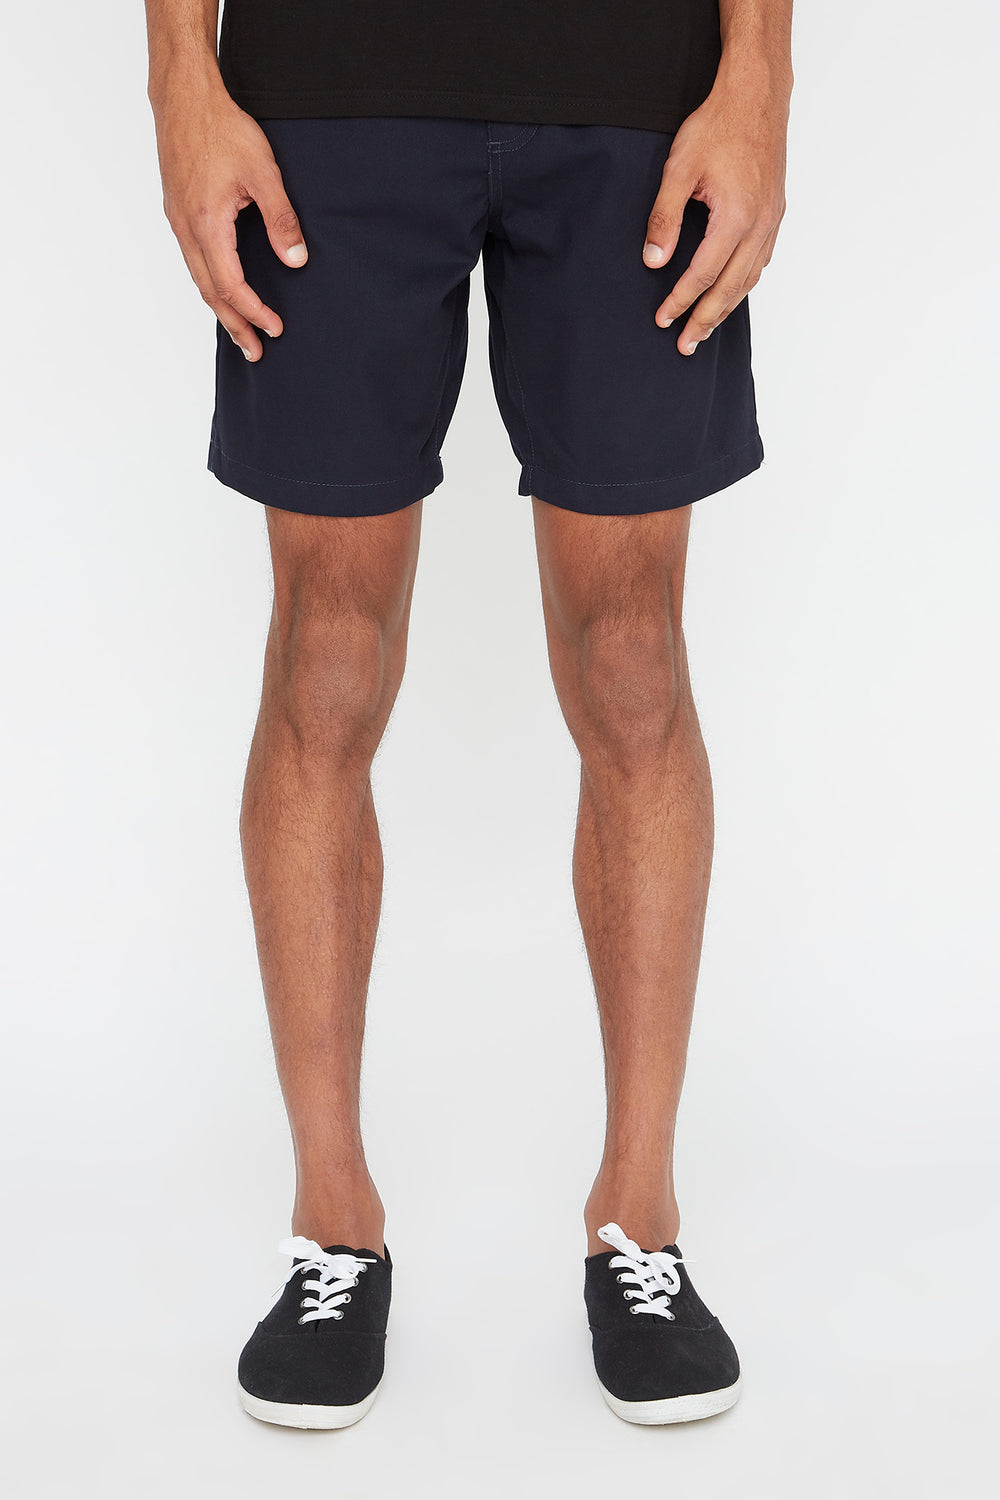 West49 Mens Slim Short Navy